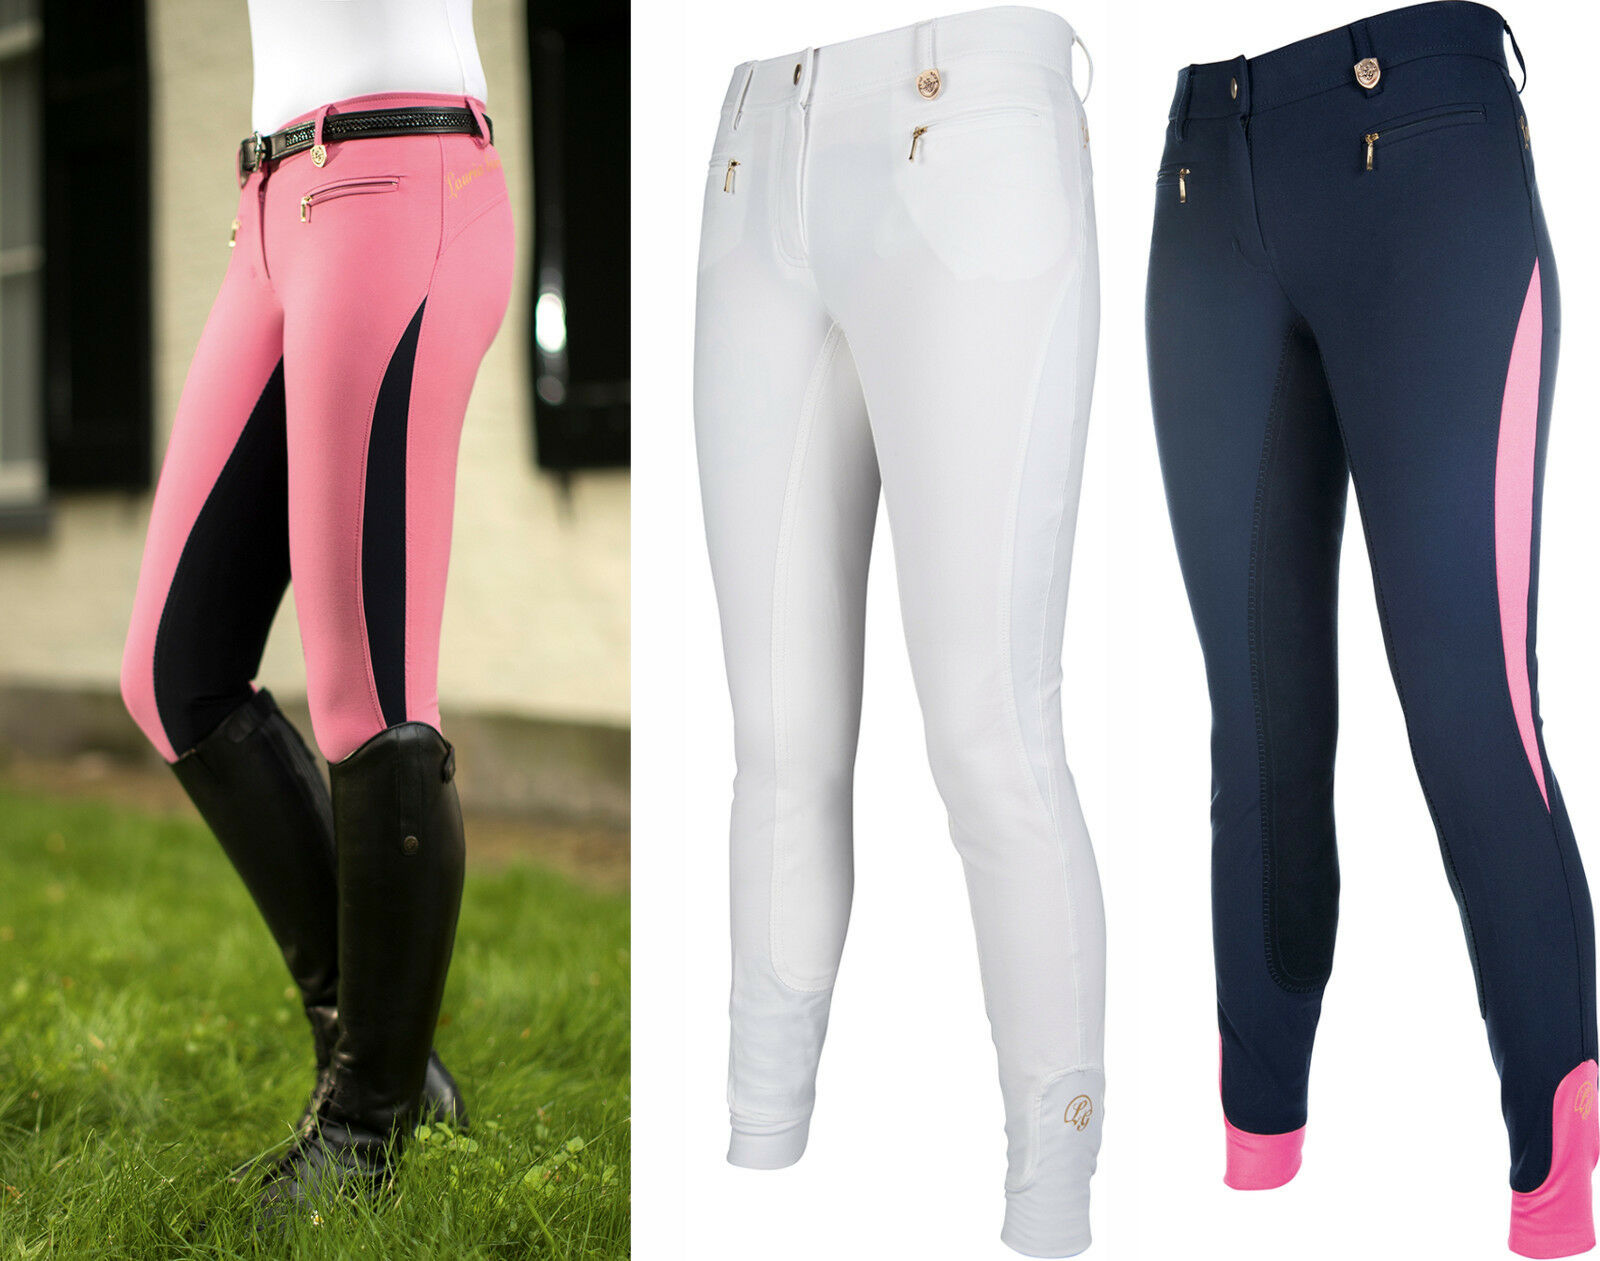 ⭐️ HKM Lauria  Garrelli Queens Elastic Riding Breeches 3 4 Alos (8790) ⭐️  up to 70% off